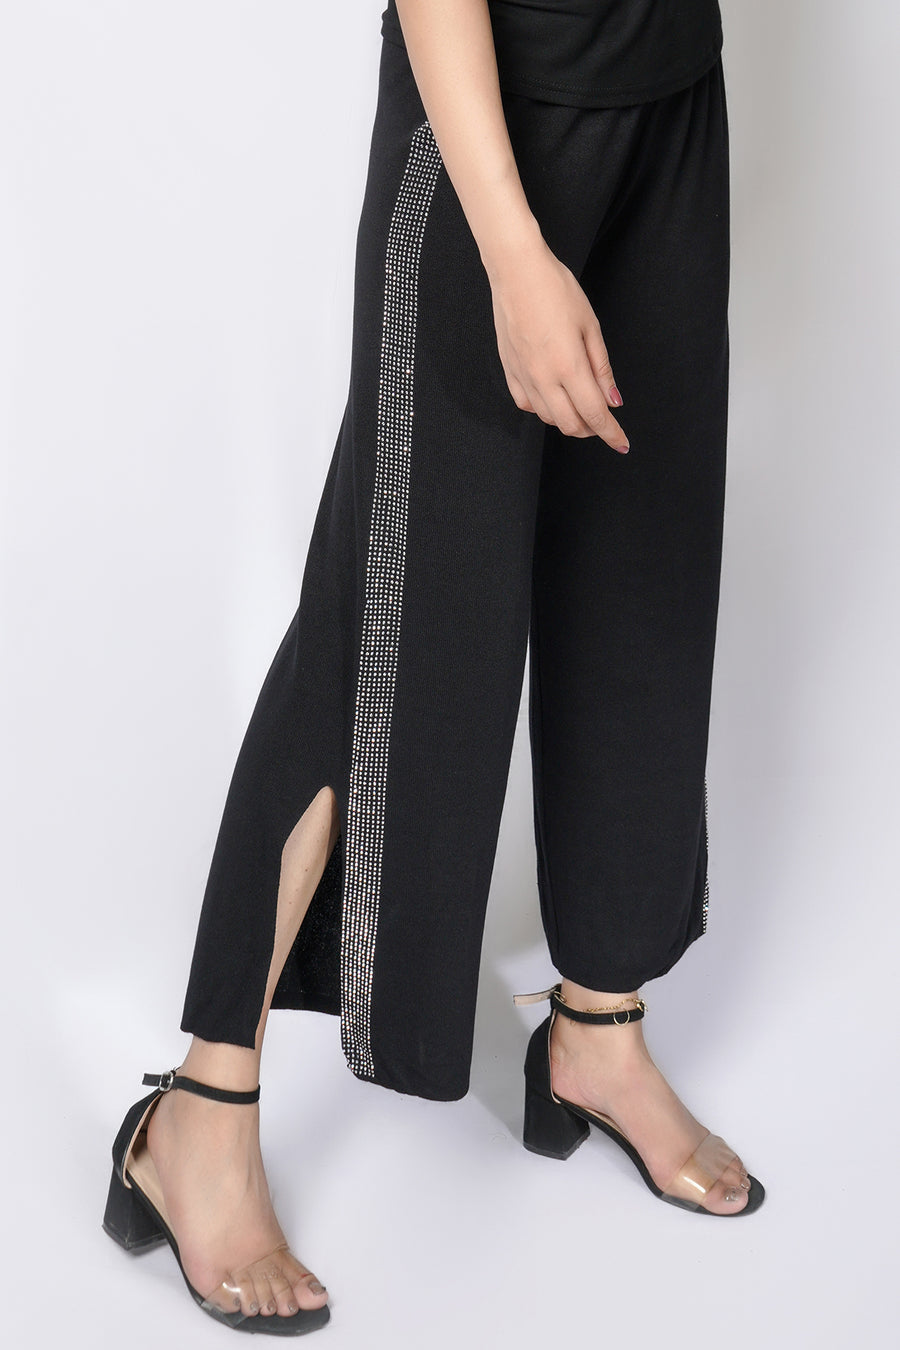 Mantra Pakistan Pant with diamonte stripe and slit | Western Wear